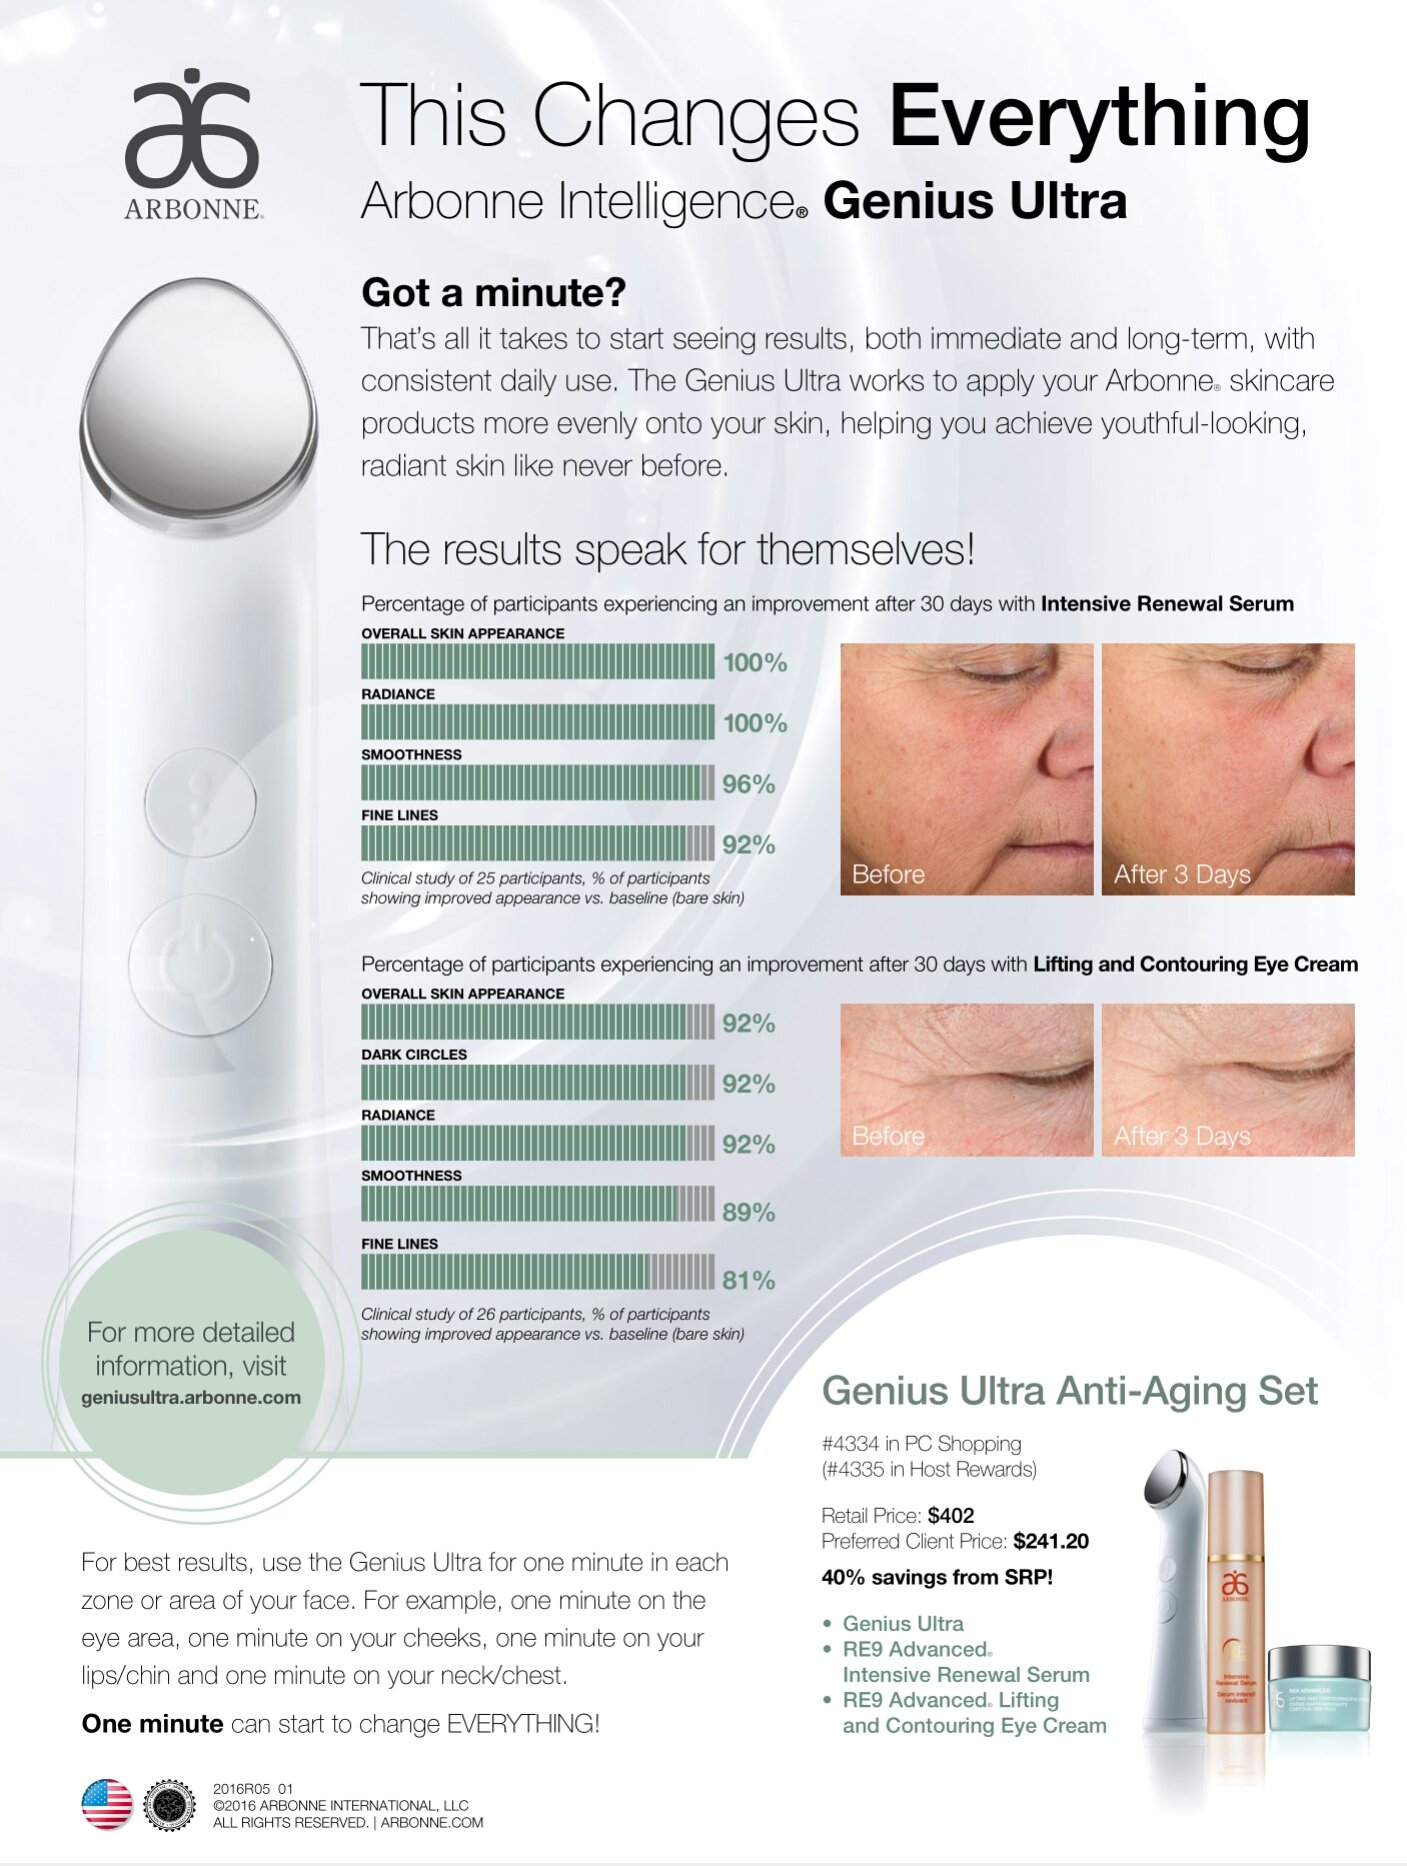 Luz Maria Heredia On Twitter This Changes Everything Arbonne Intelligence Genius Ultra Ultrasoundtechnology Antiaging Skincare Spa Spatreatment Medspa Ulthearpy Https T Co Xgnmtid3vo